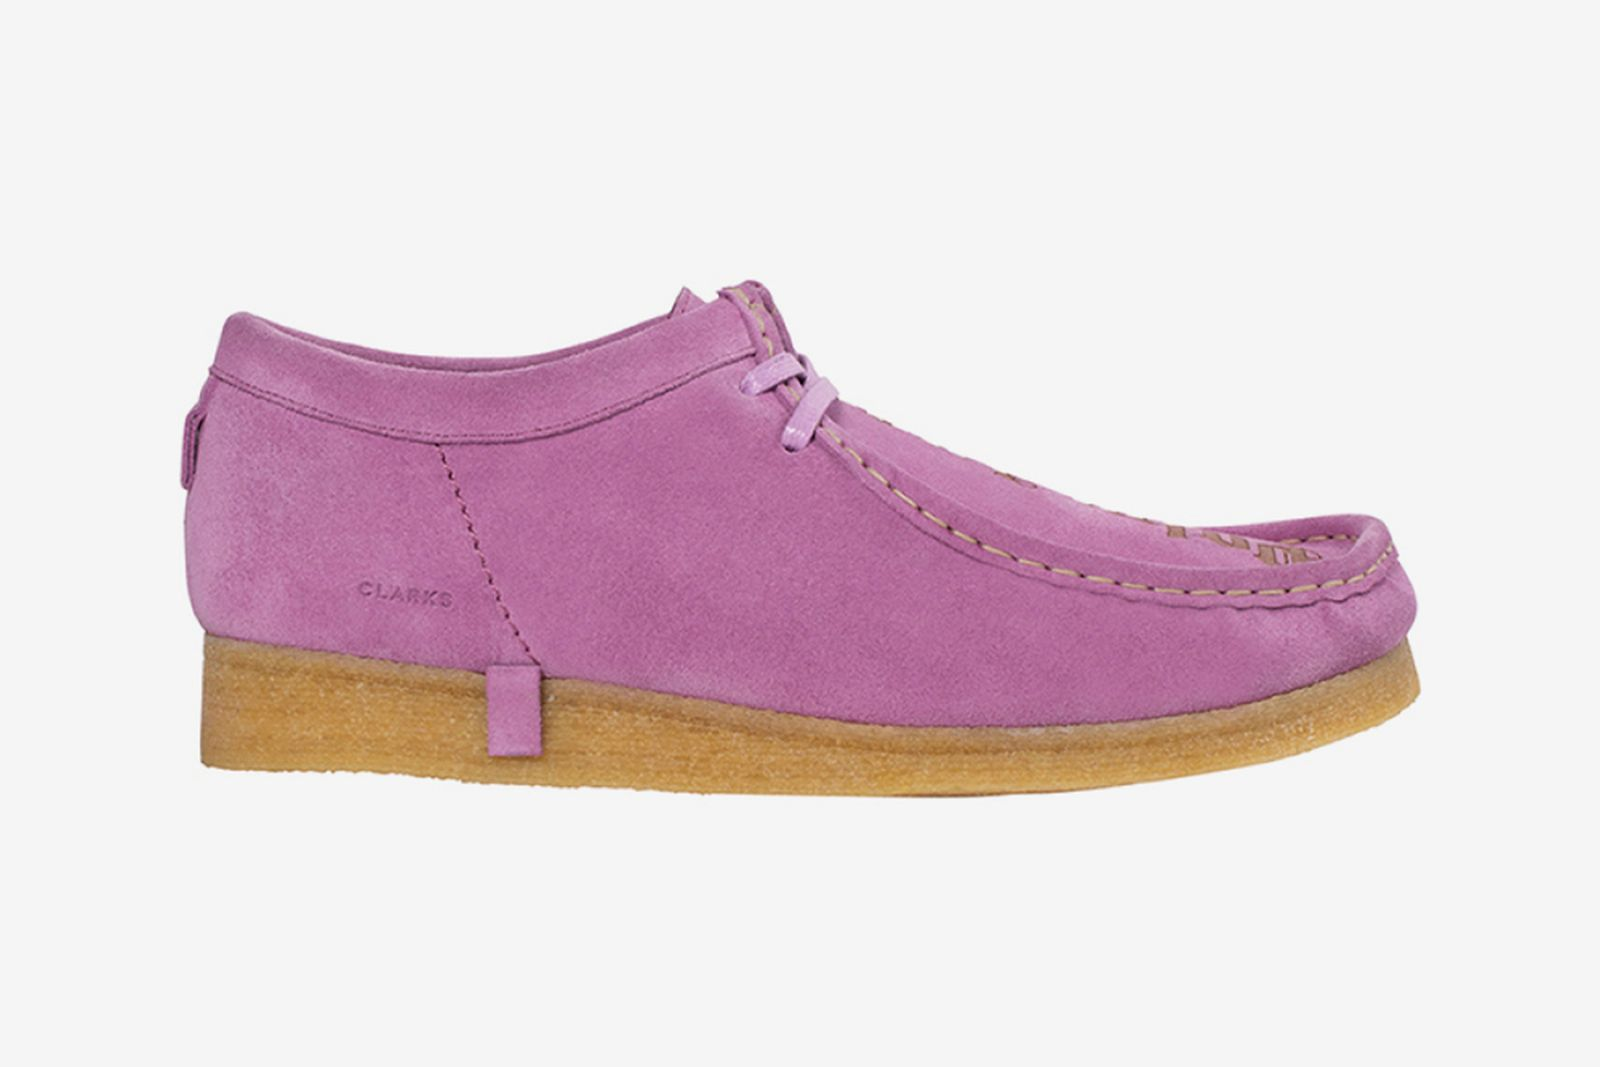 palm-angels-clarks-wallabee-release-date-price-1-05